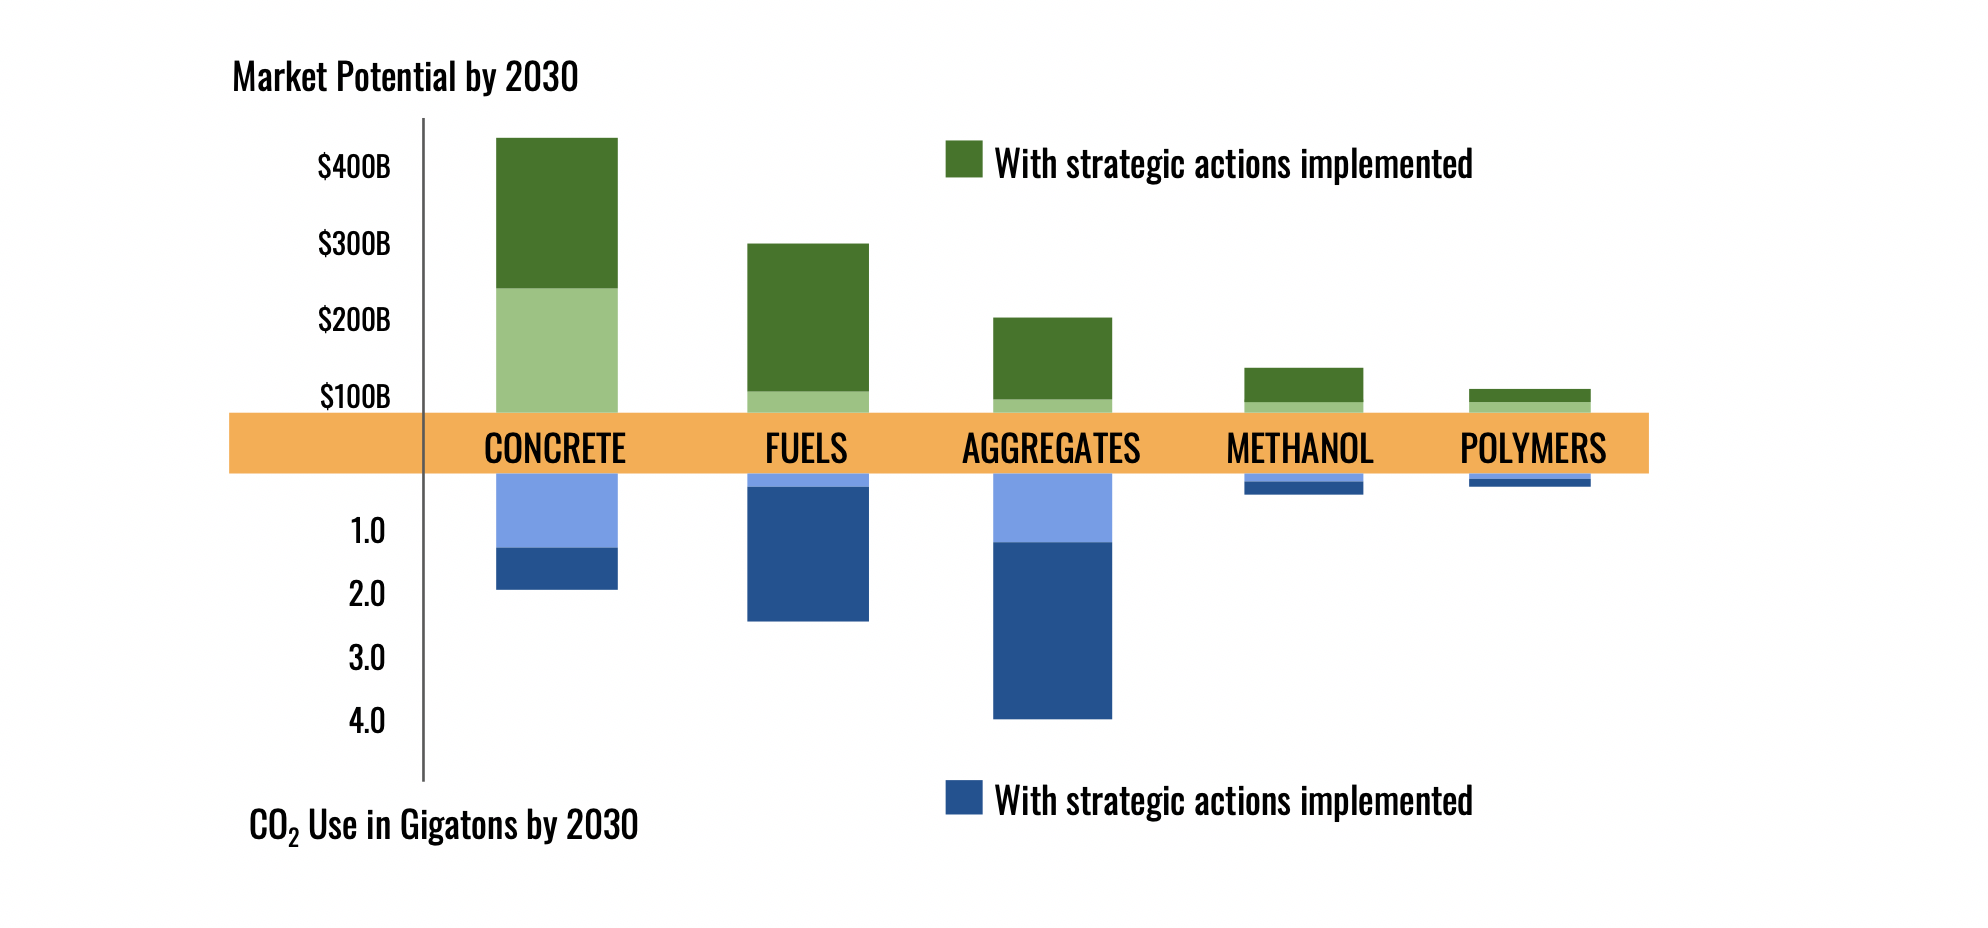 Strategic policy action can unlock huge market opportunities